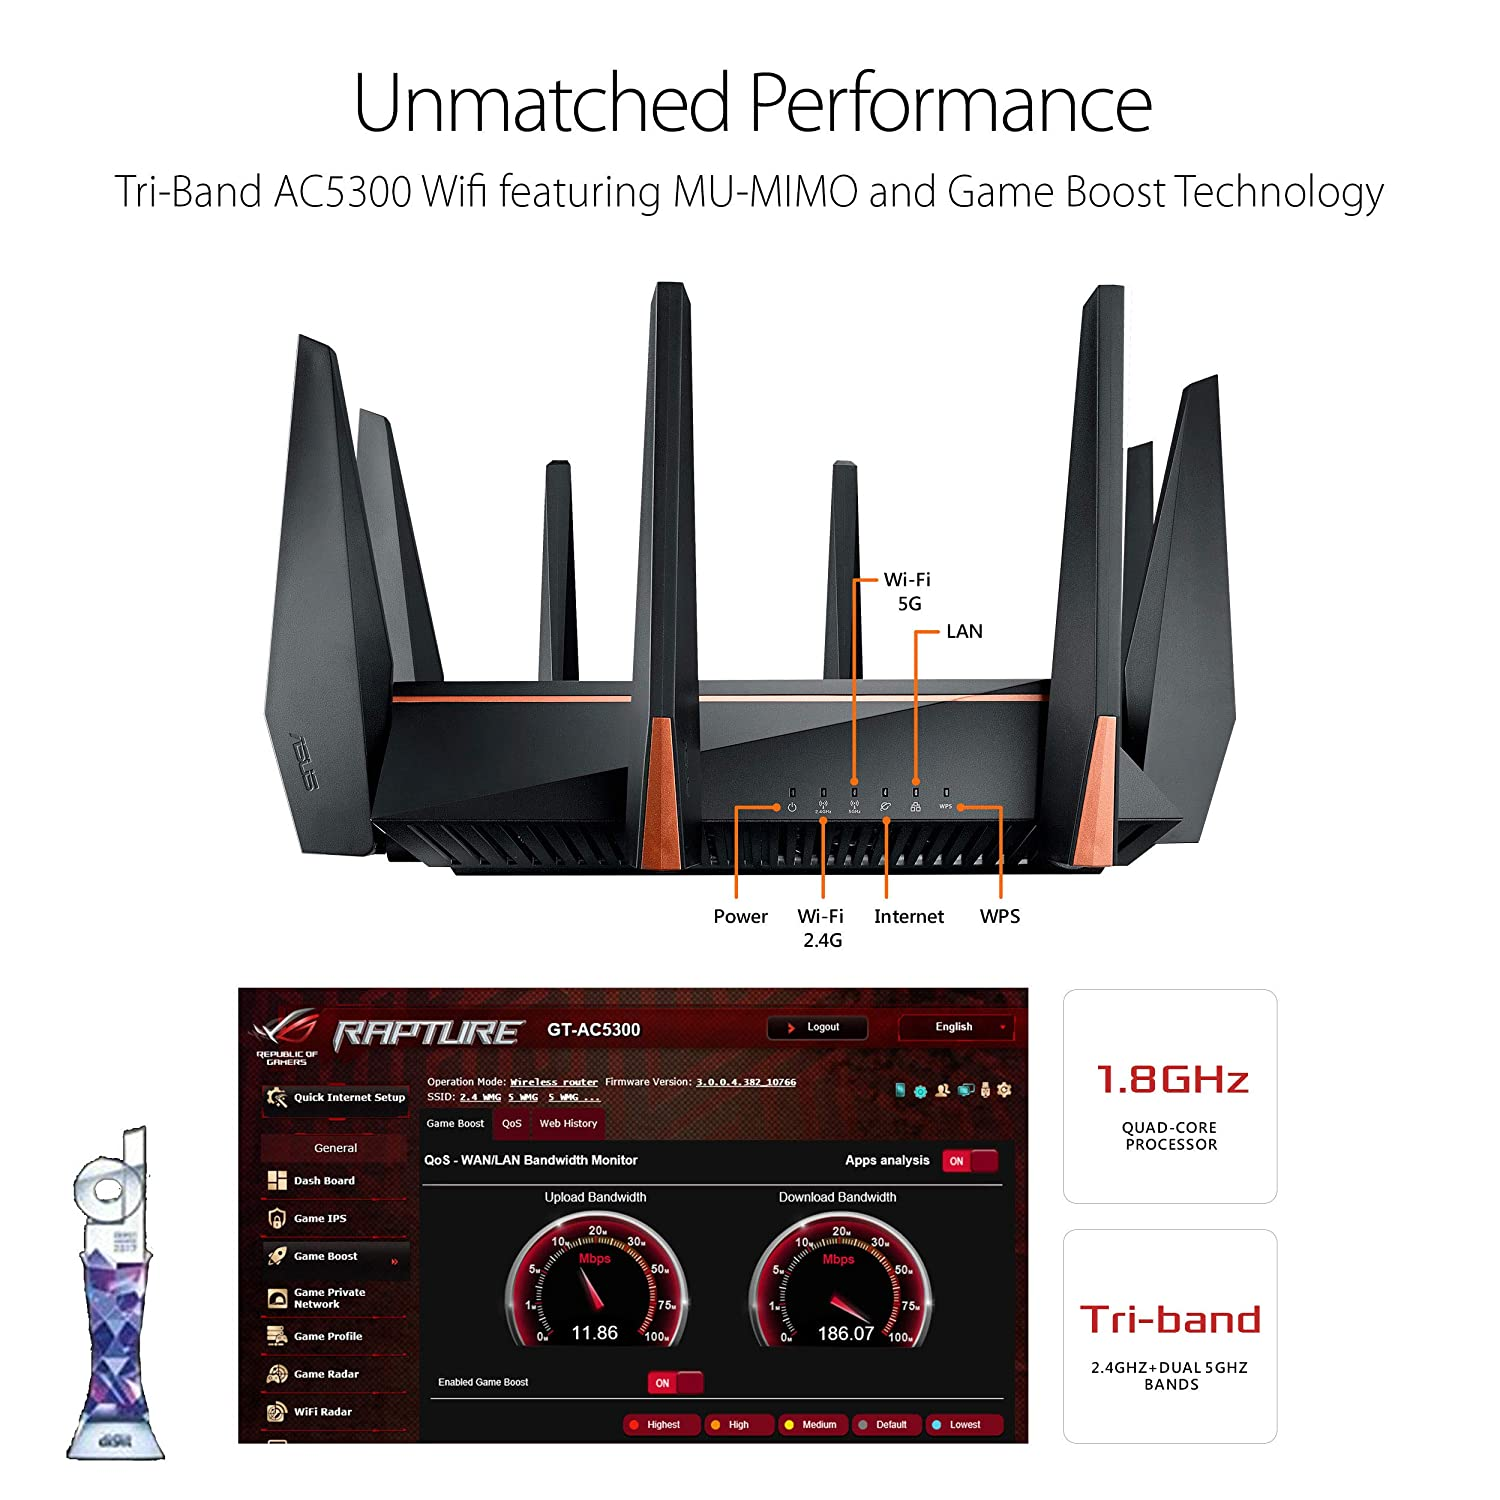 ASUS ROG Rapture GT-AC5300 Extreme Gaming Router, 1 8GHz